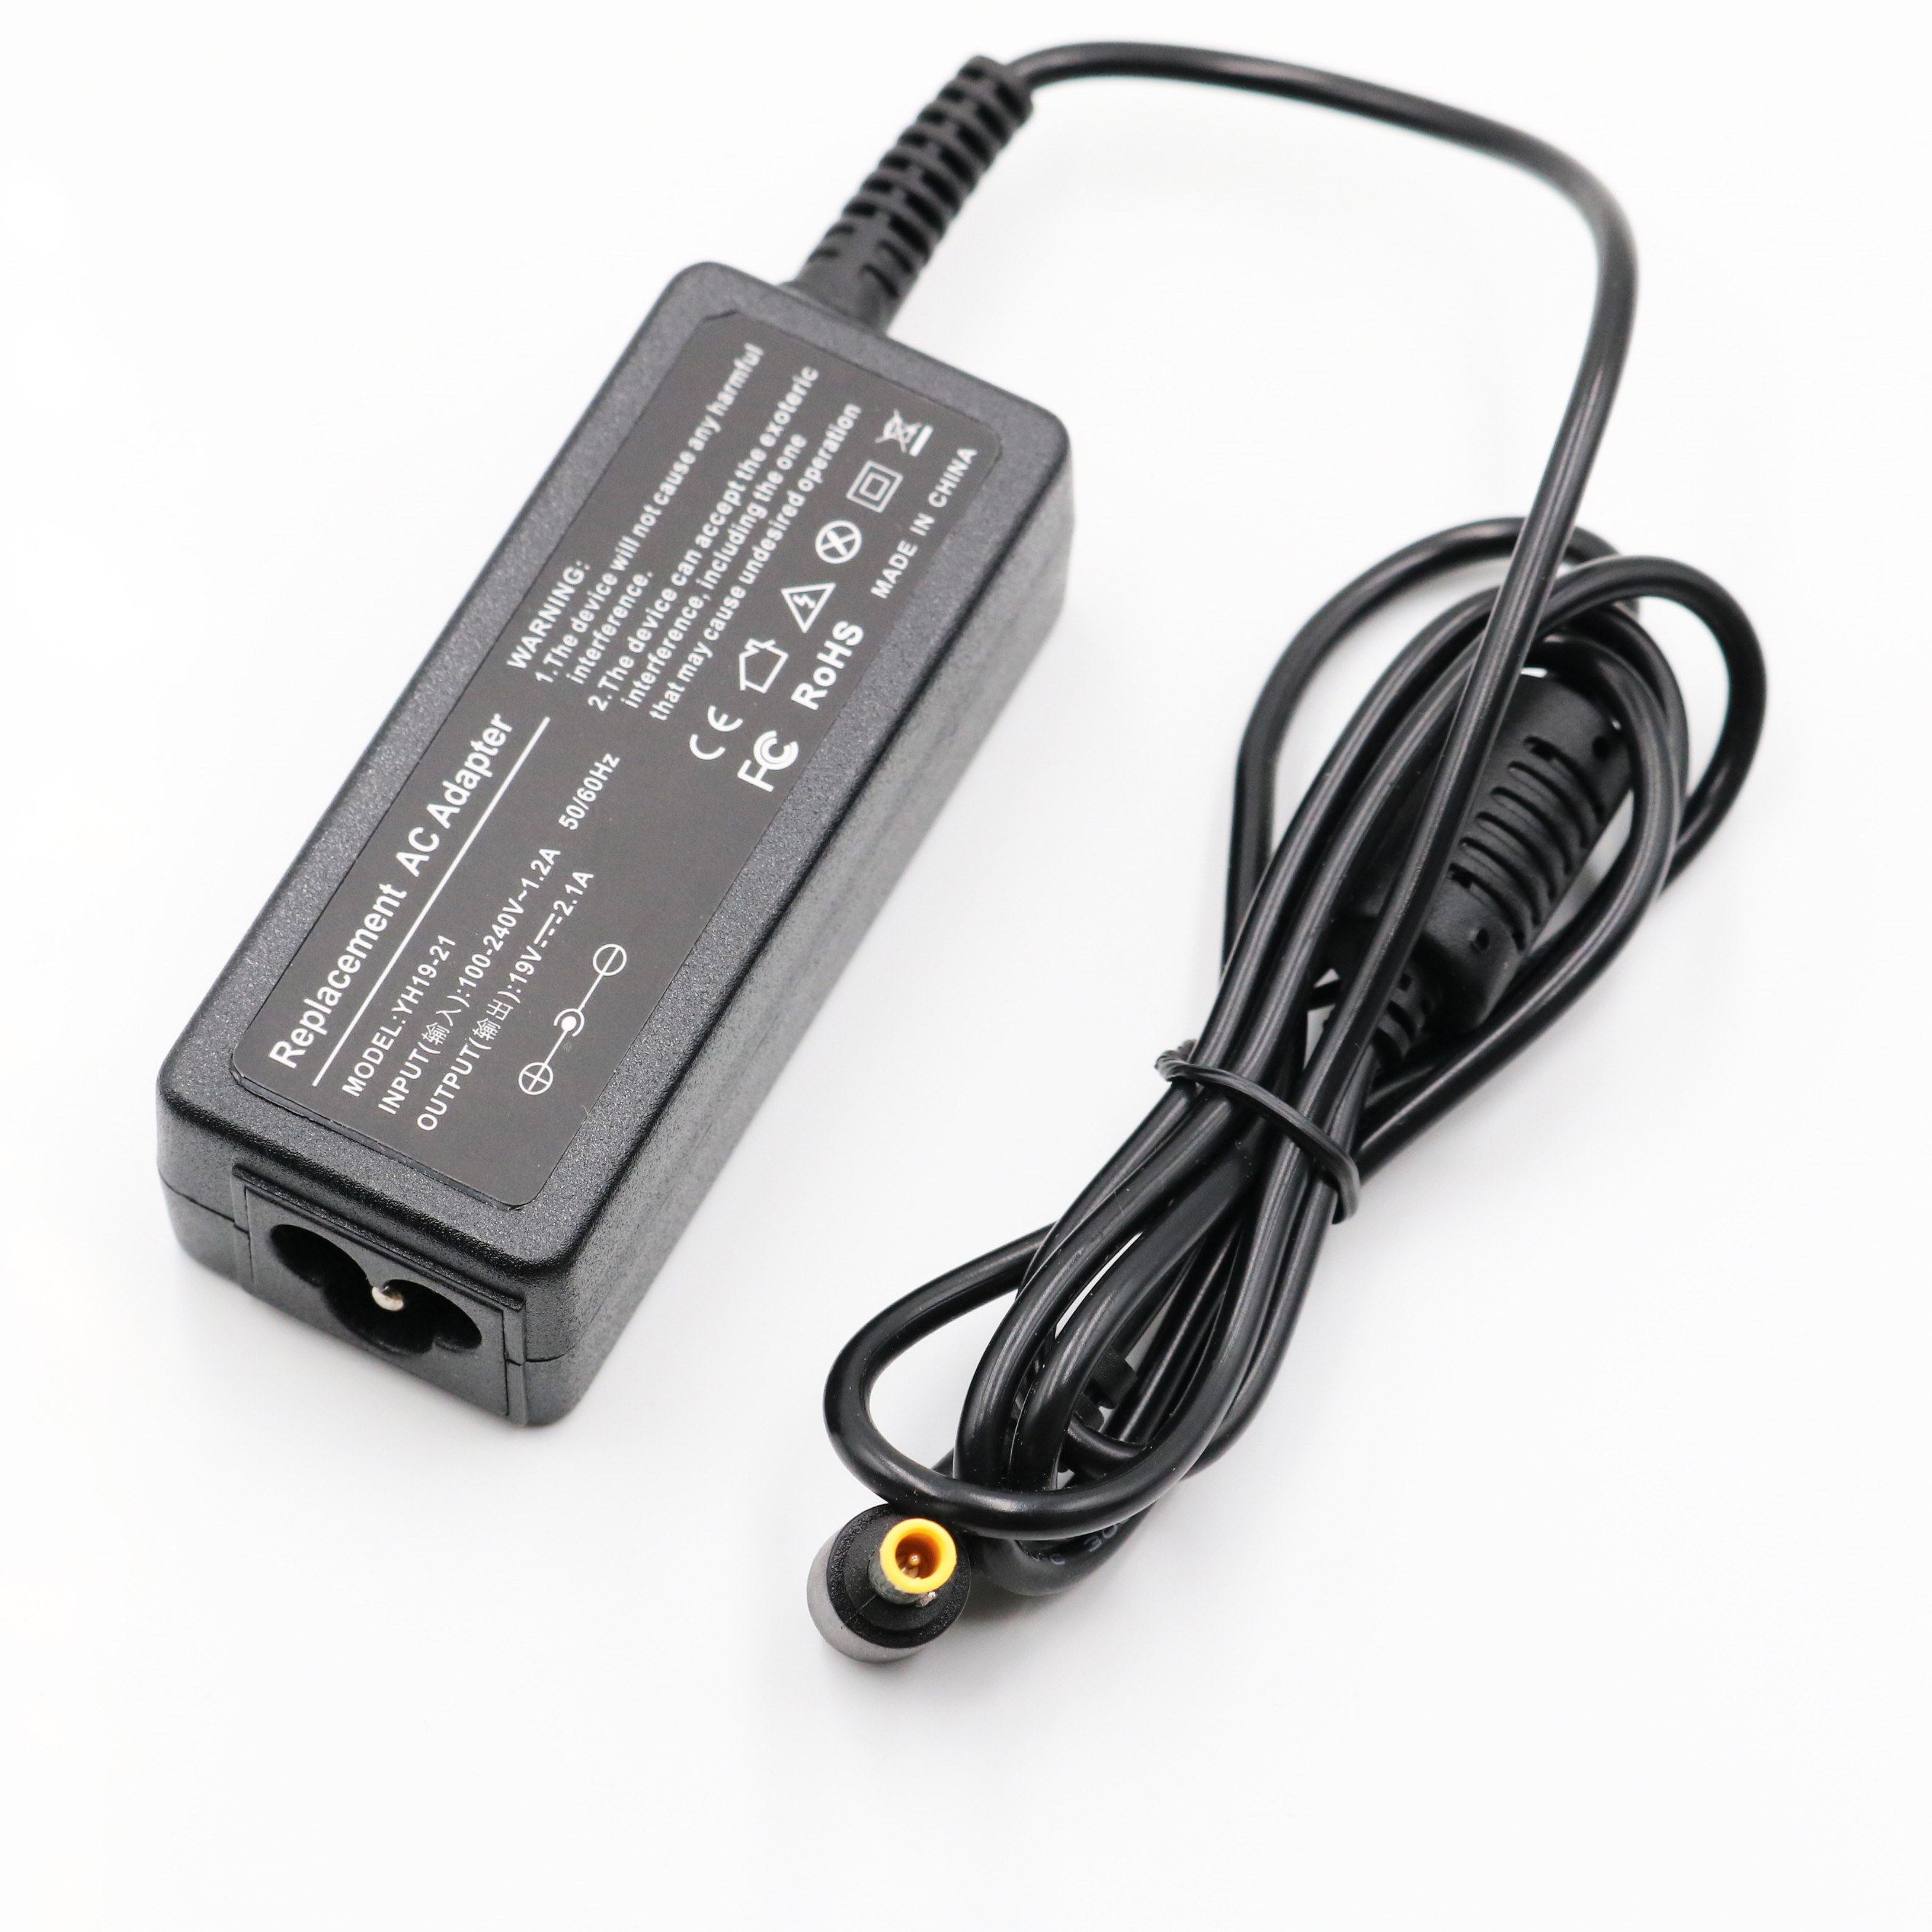 Brand New 19V 2.1A 40W AC Power Laptop Charger For Samsung Notebook ad-6019 530U3C 535U3C N130 N140